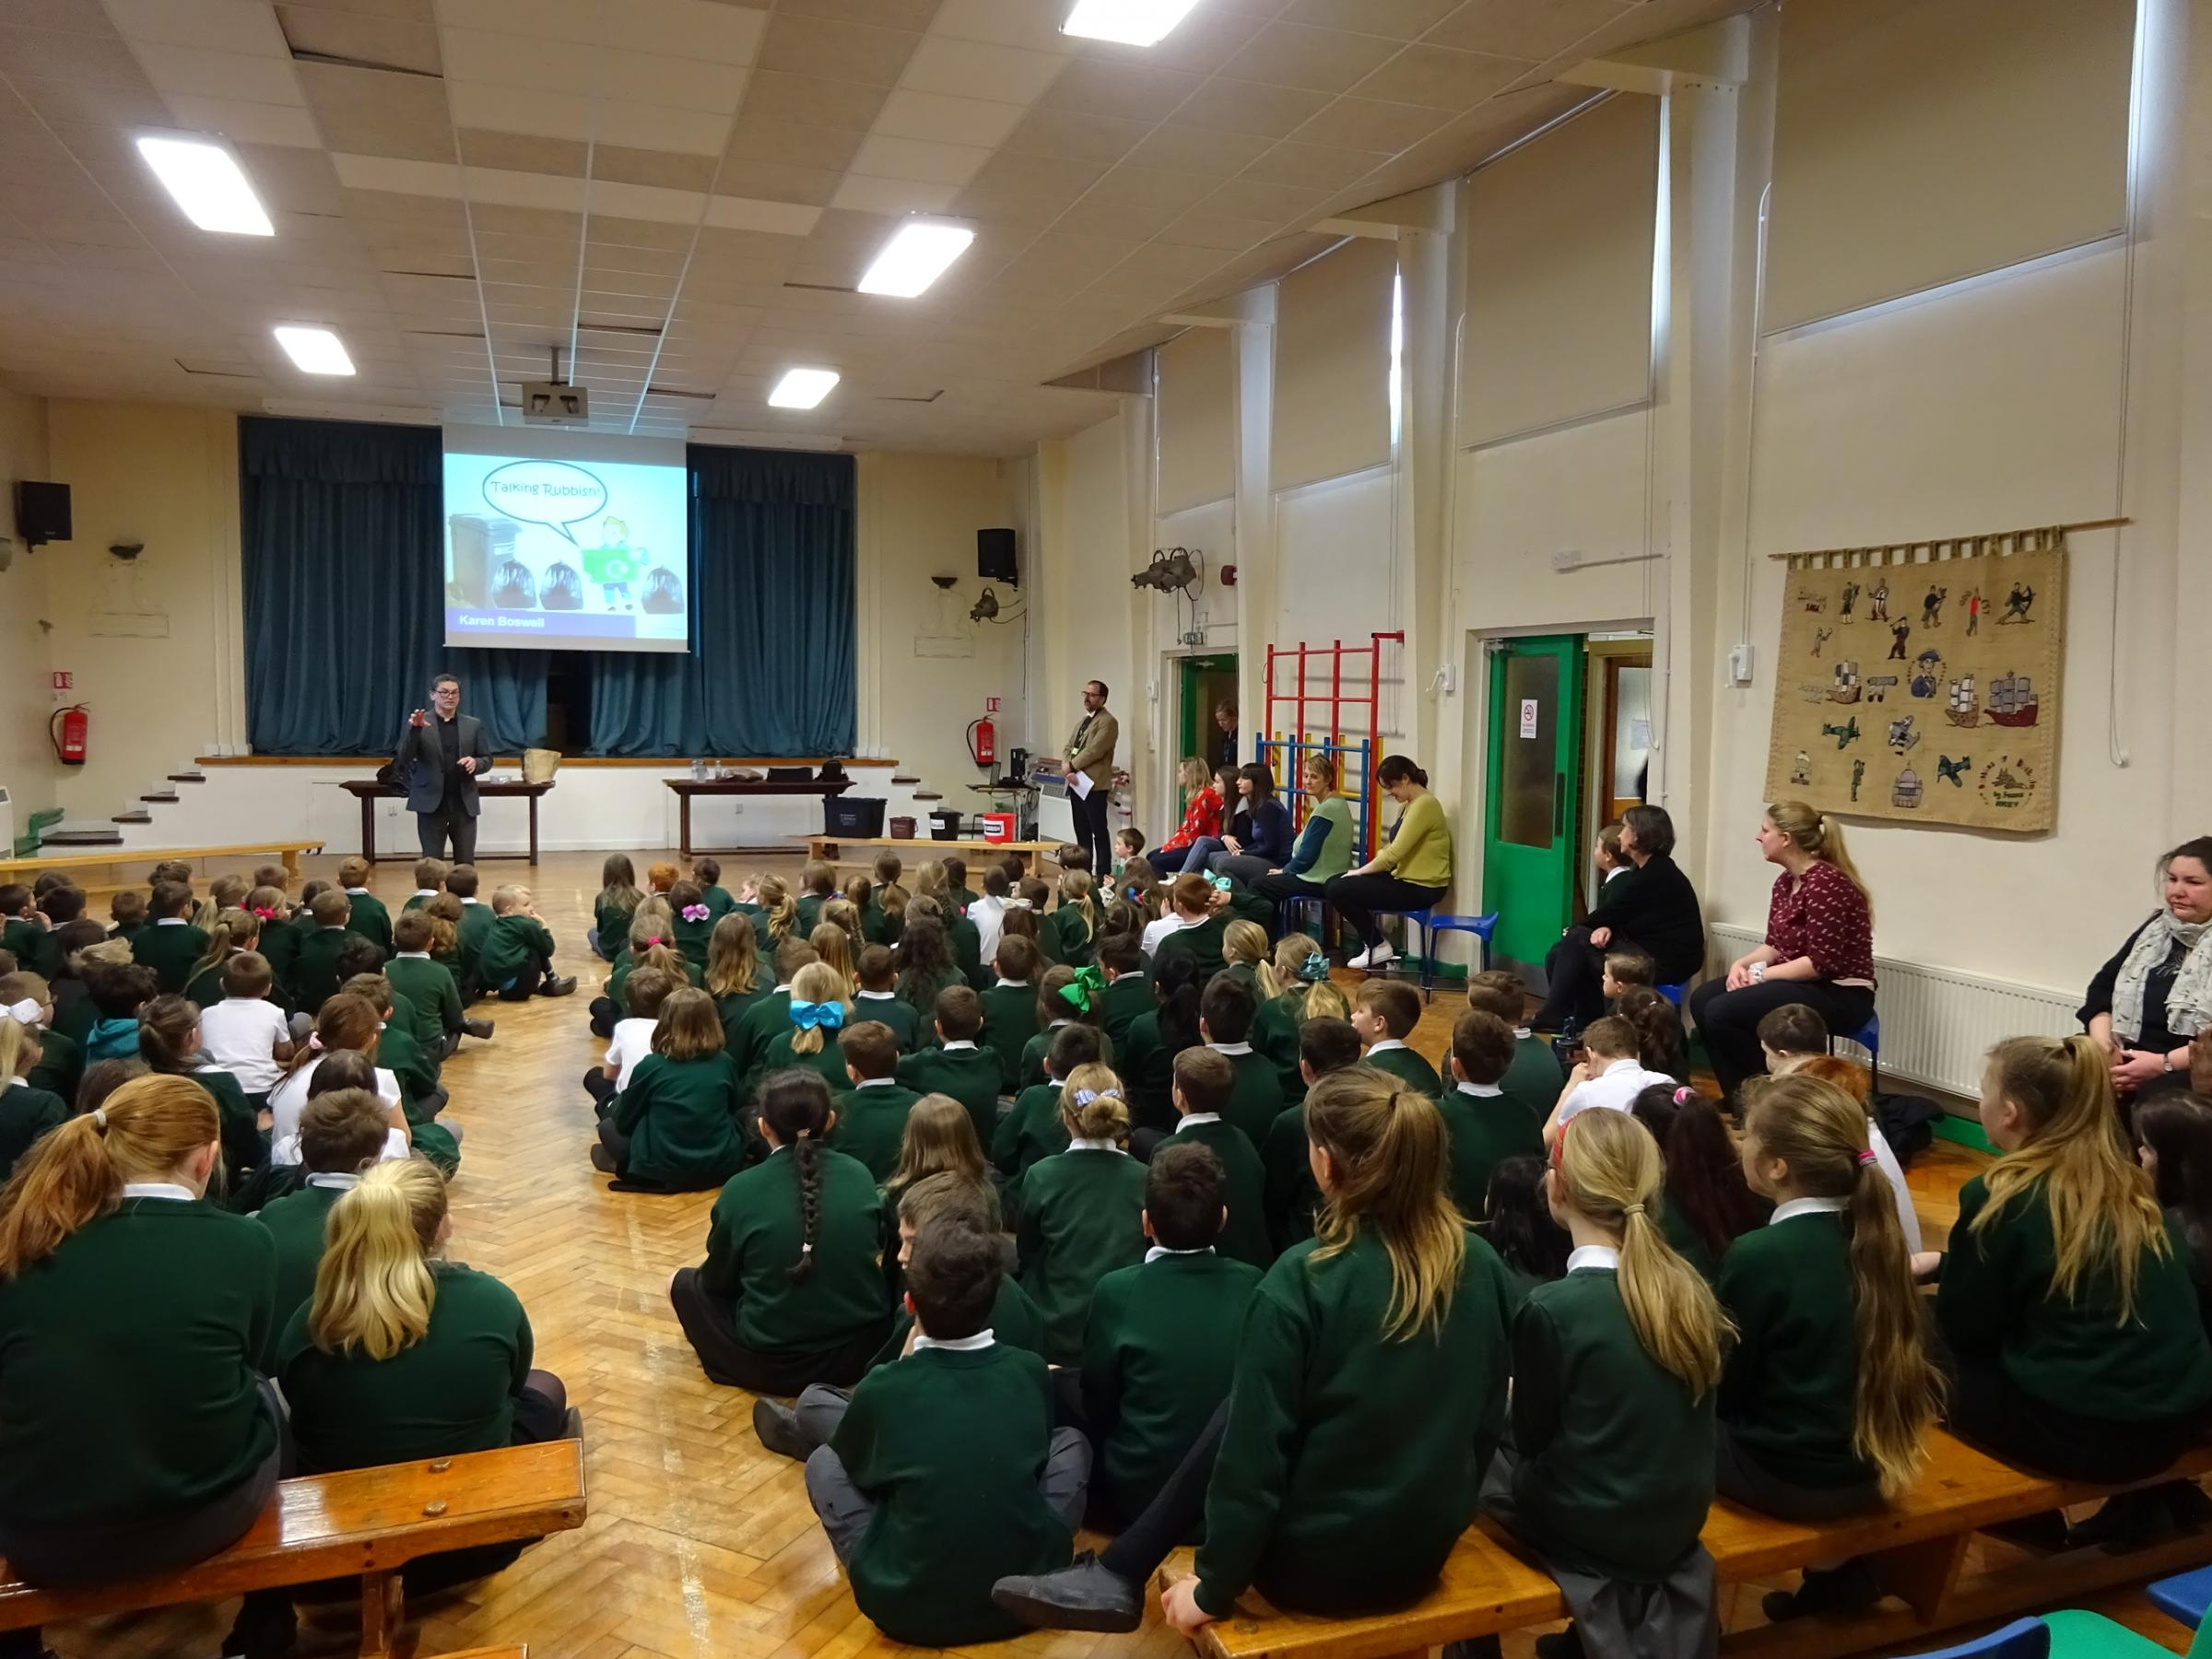 LEARNING: Wellsprings Primary School listening to the assemblies